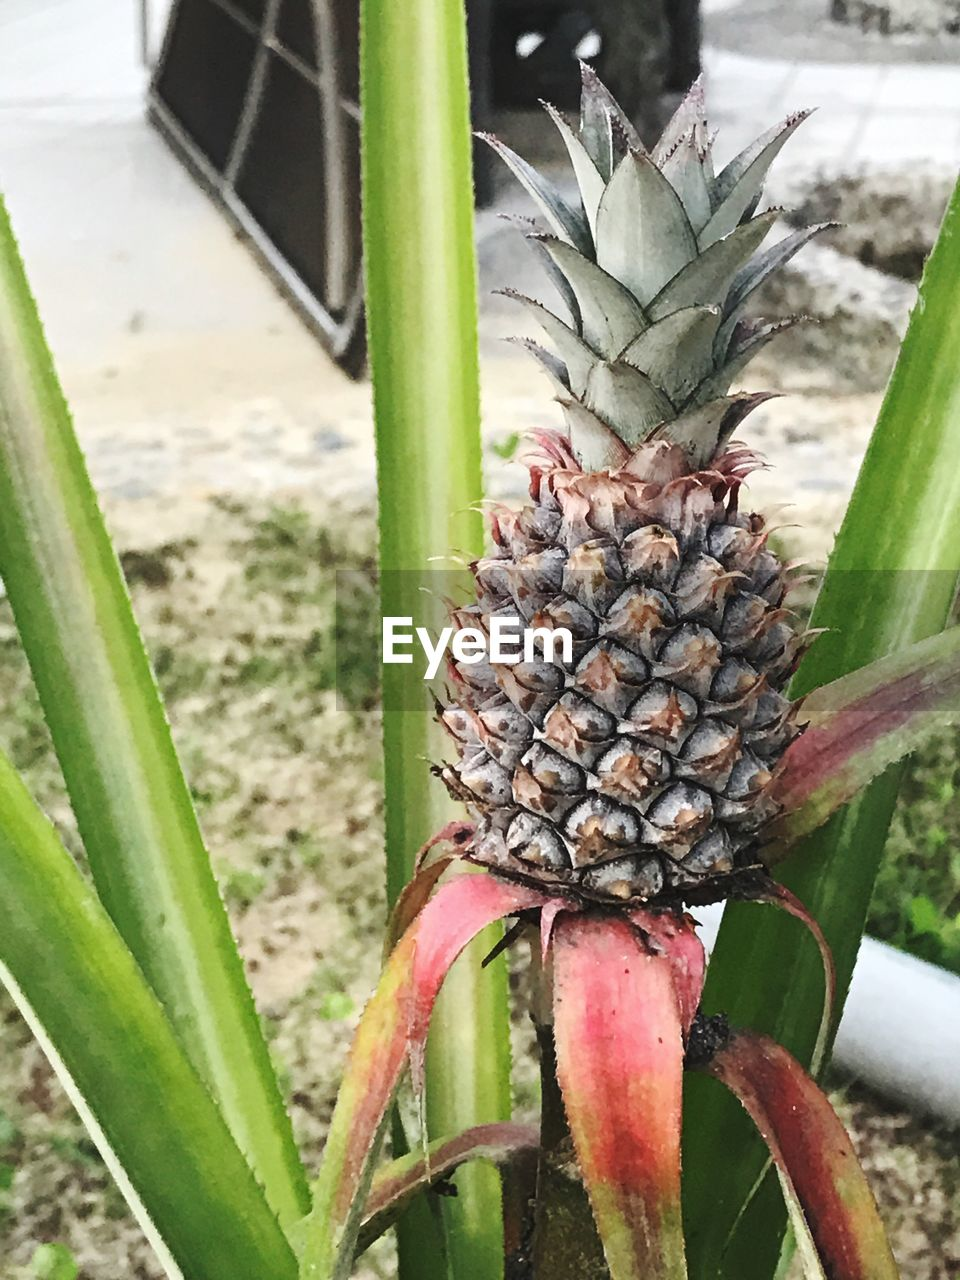 cactus, aloe vera plant, pineapple, nature, thorn, no people, growth, day, green color, outdoors, plant, food and drink, food, close-up, beauty in nature, healthy eating, freshness, flower